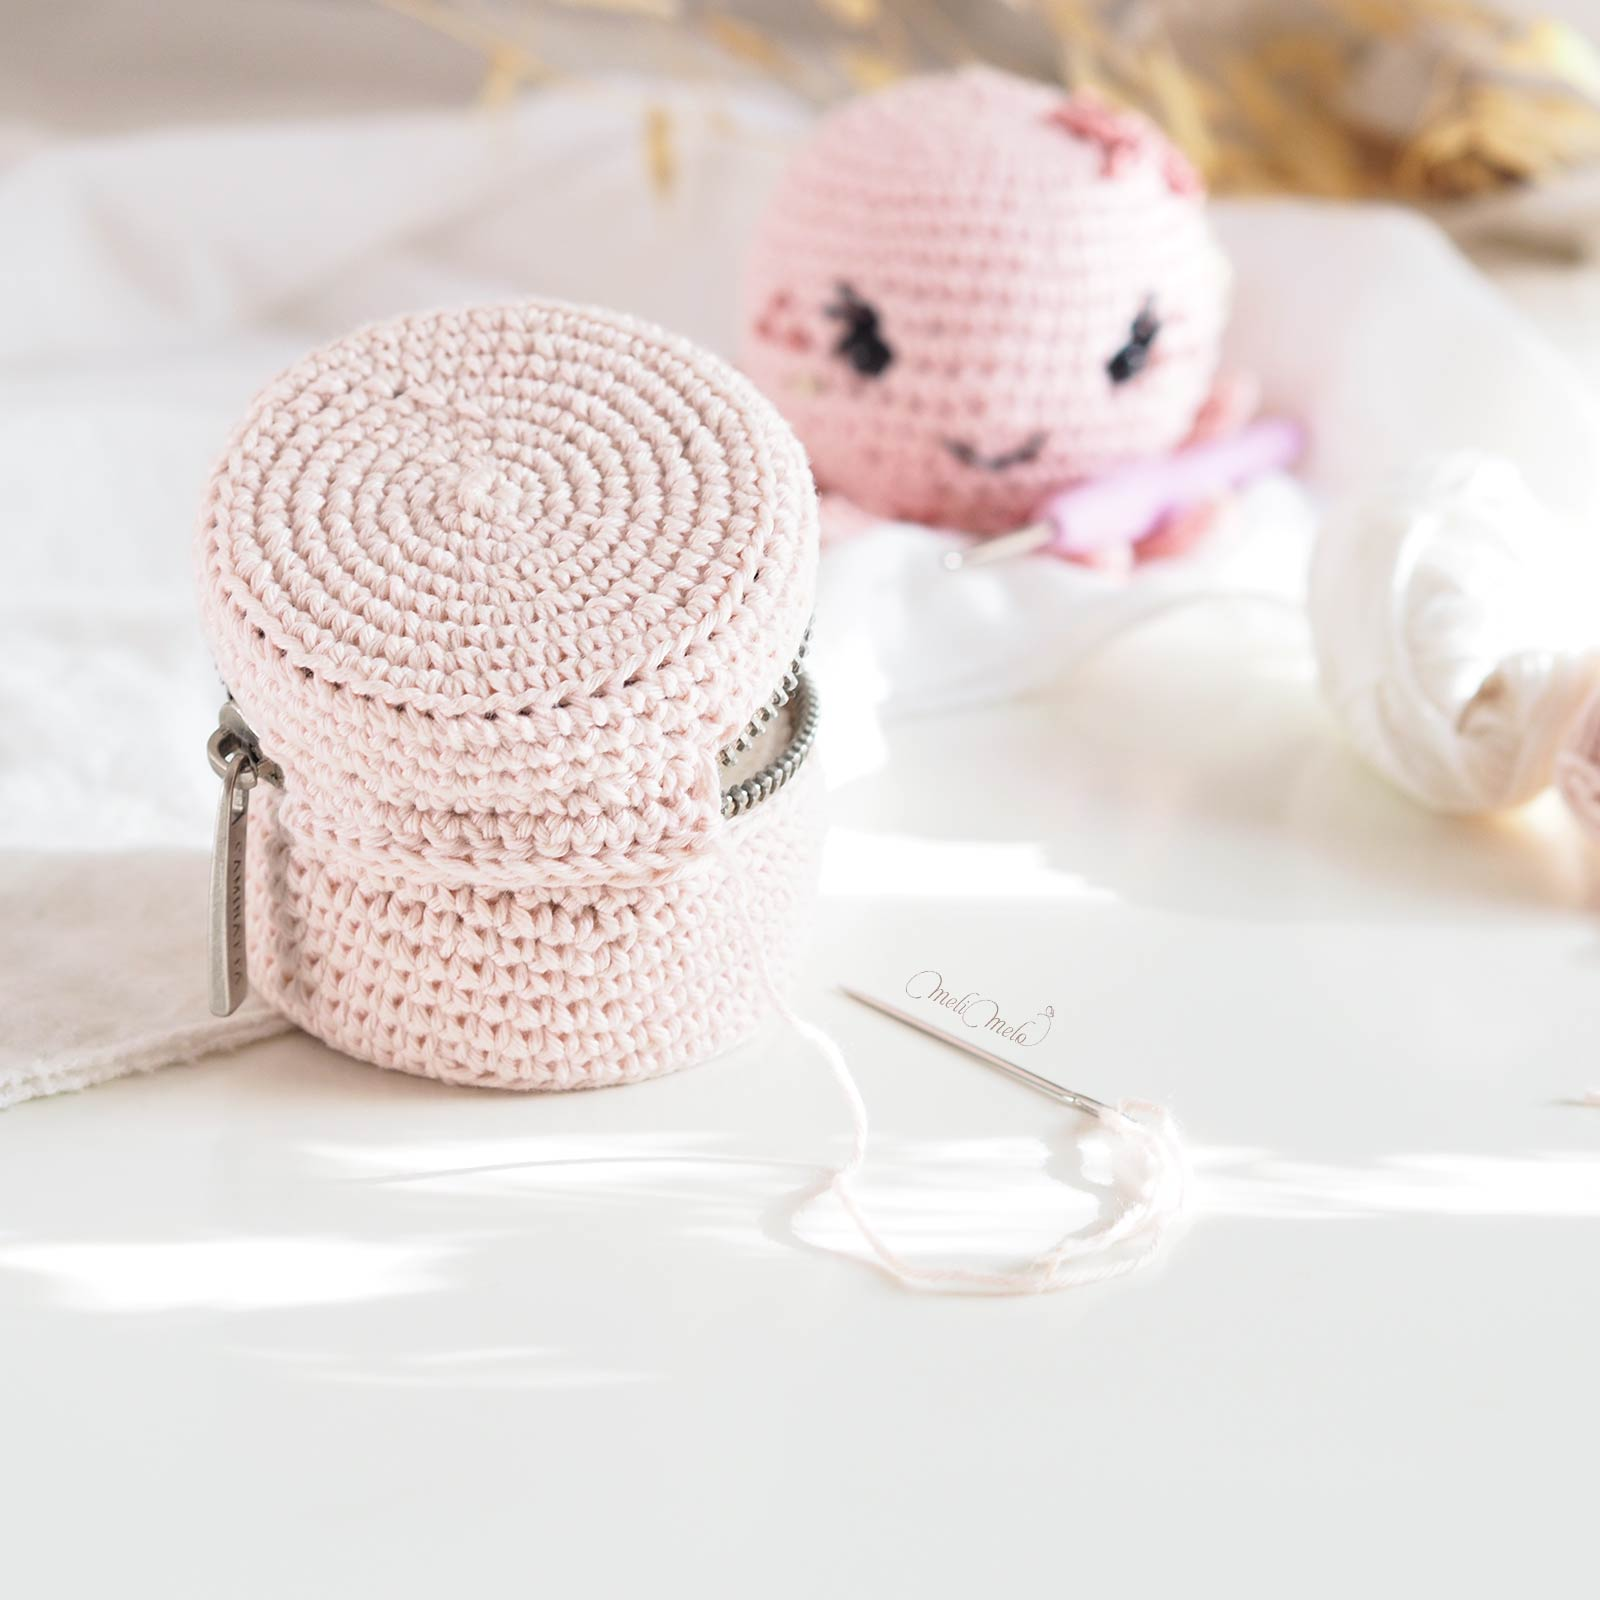 boite-maquillage-crochet-coton-upcycling-cousette-03-laboutiquedemelimelo